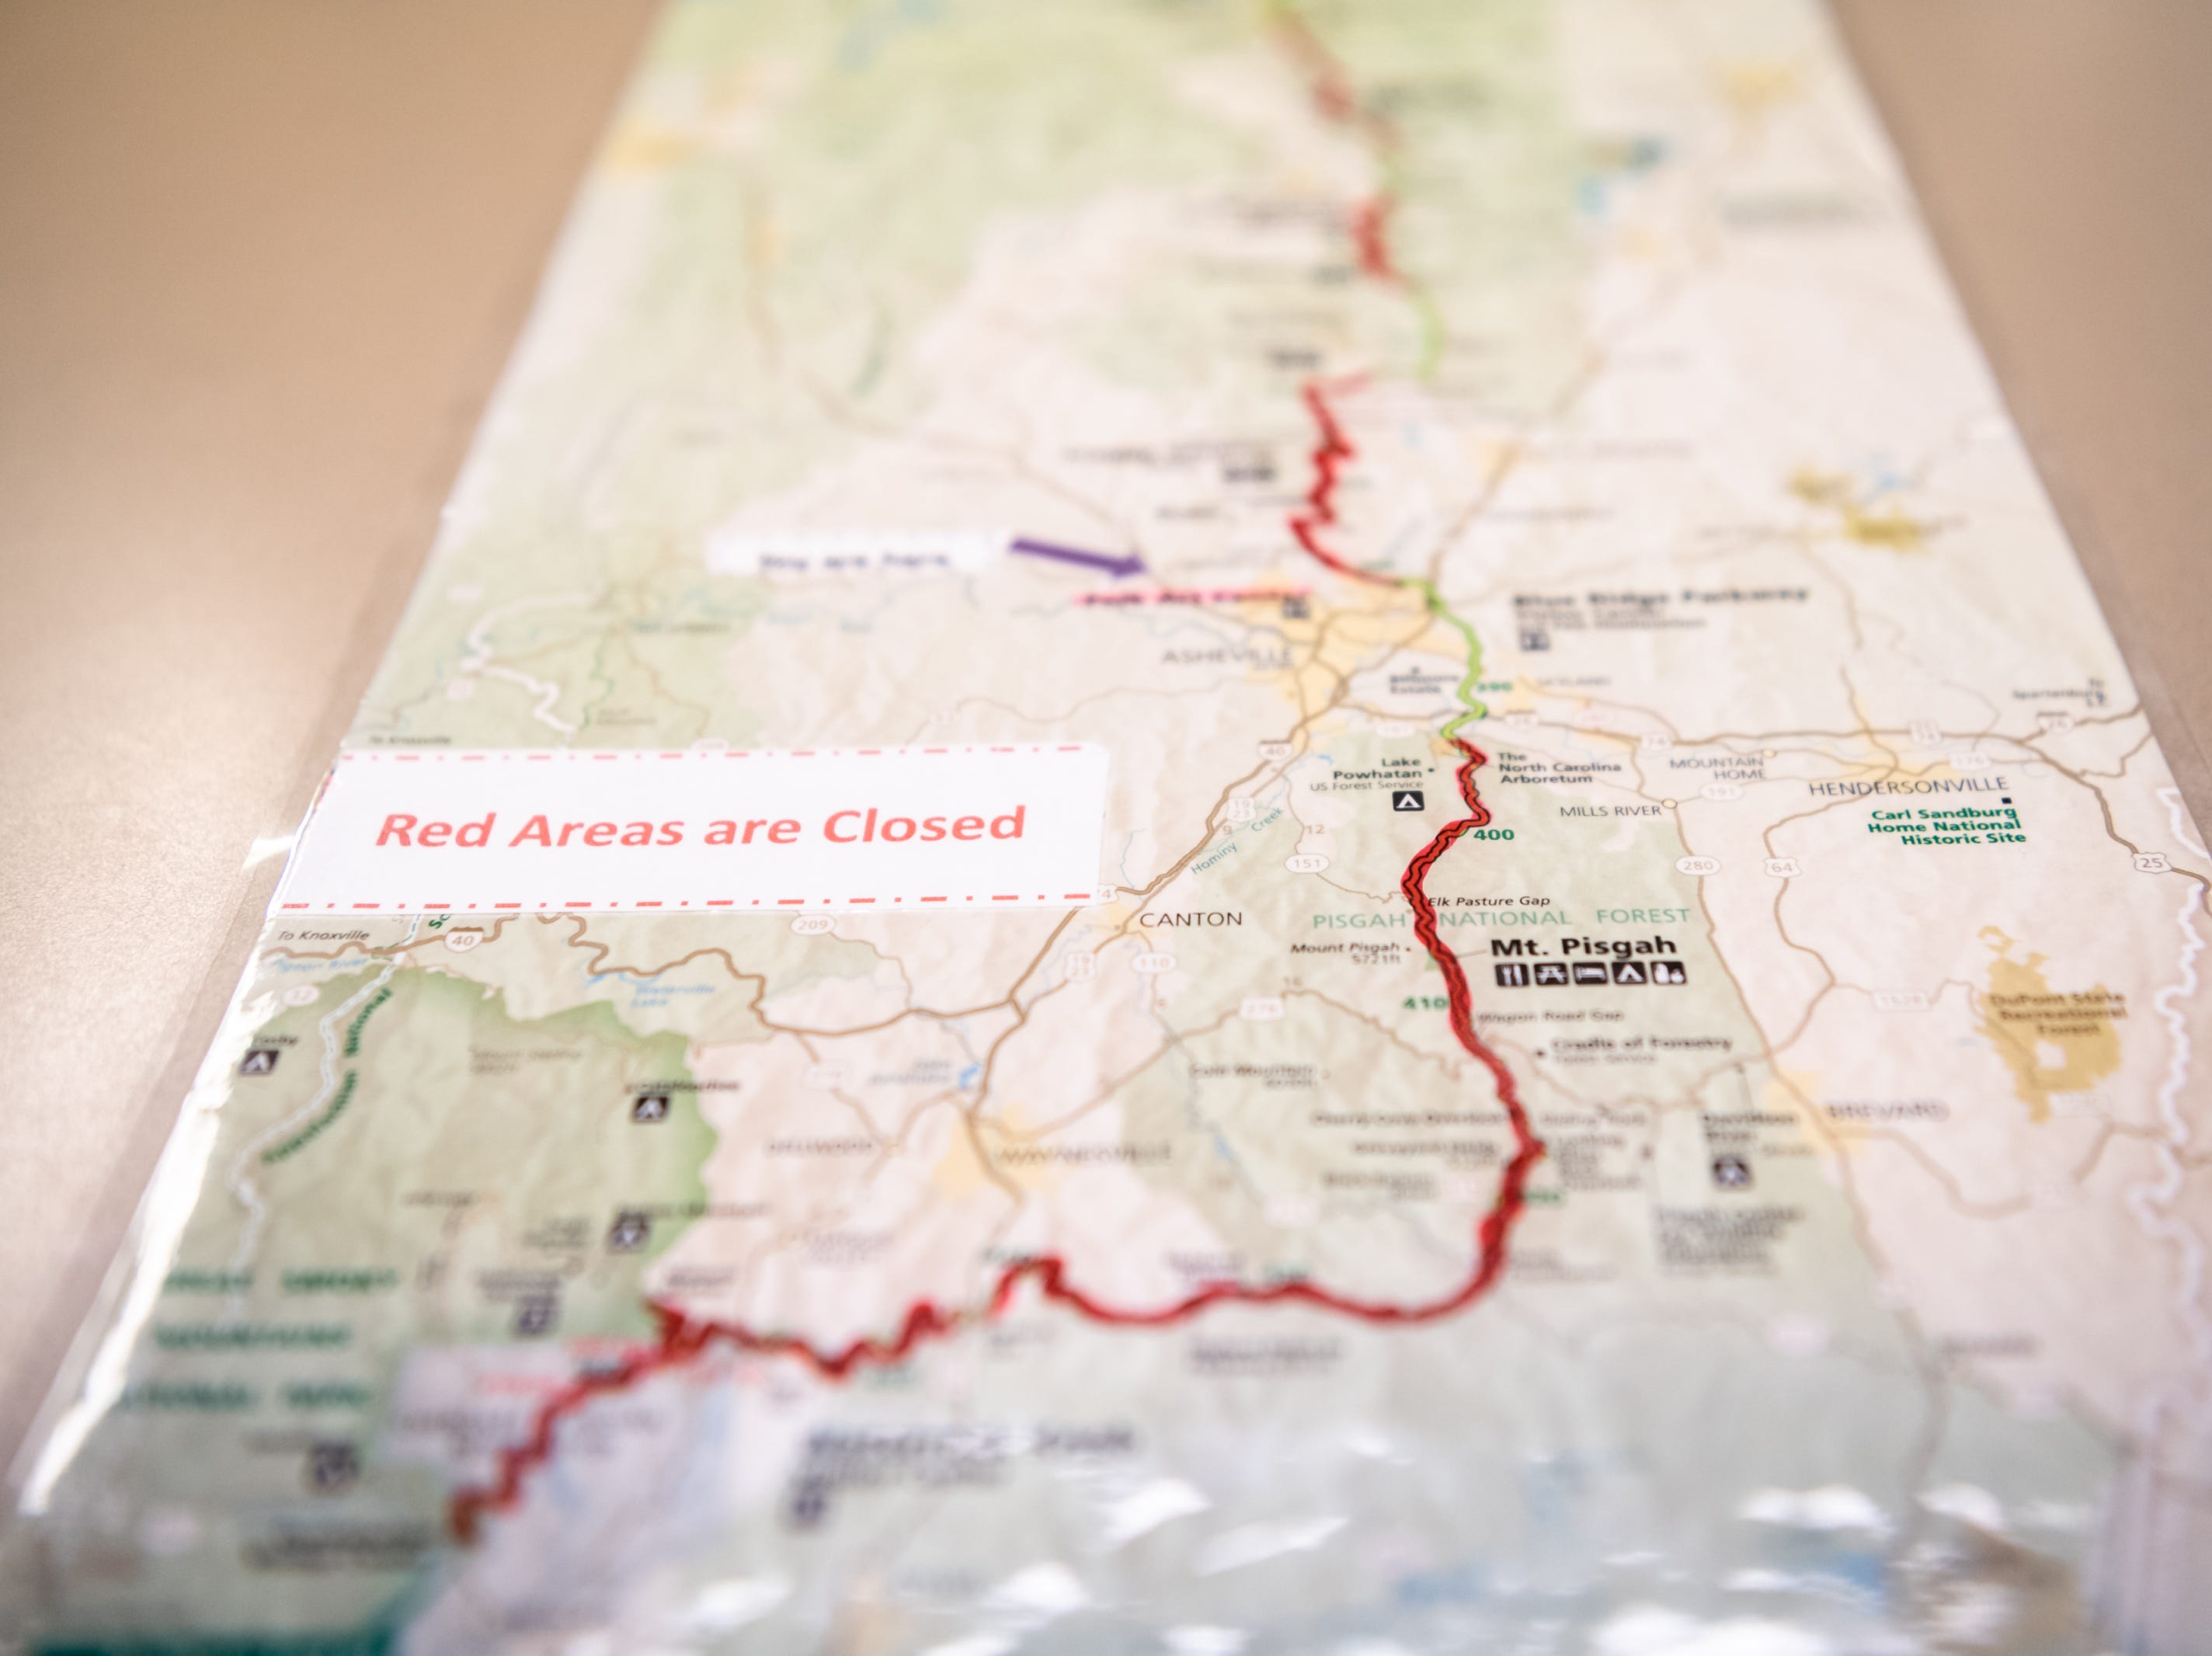 A map at the Folk Art Center showing which section of the Blue Ridge Parkway are closed due to the government shutdown, Jan. 5, 2019. The Folk Art Center is the only facility on the Parkway currently open. An employee there stated that she has observed much lighter traffic than usual since the shutdown.